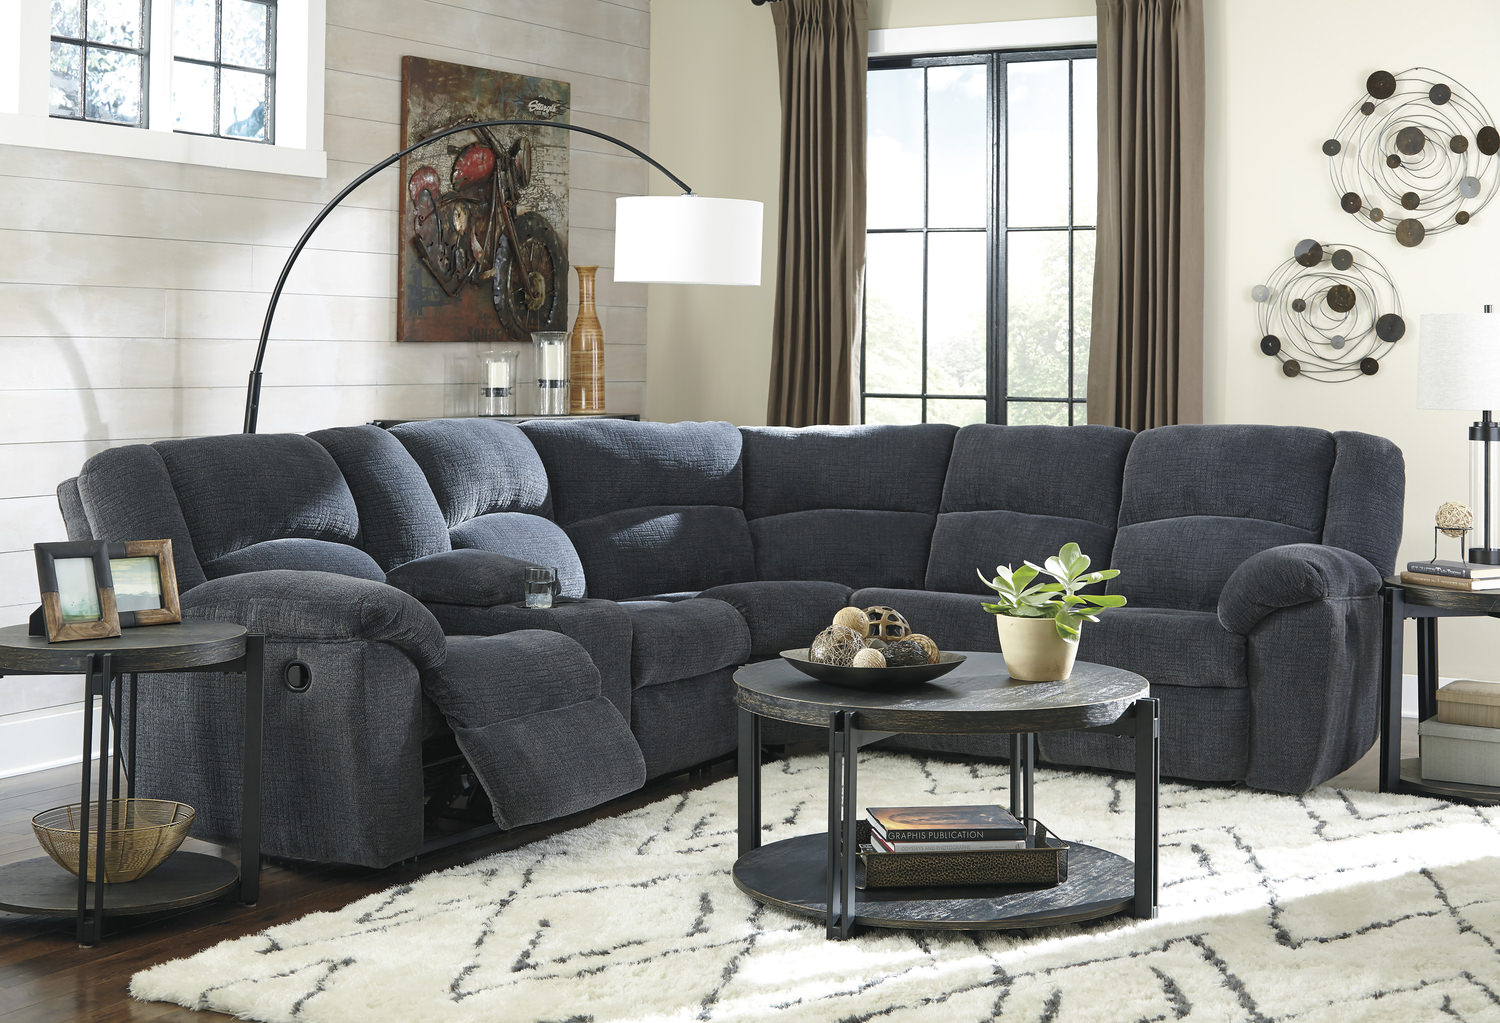 condo sofas black sized mn modern greyblack grey jacob corduroy in sectional p sofa